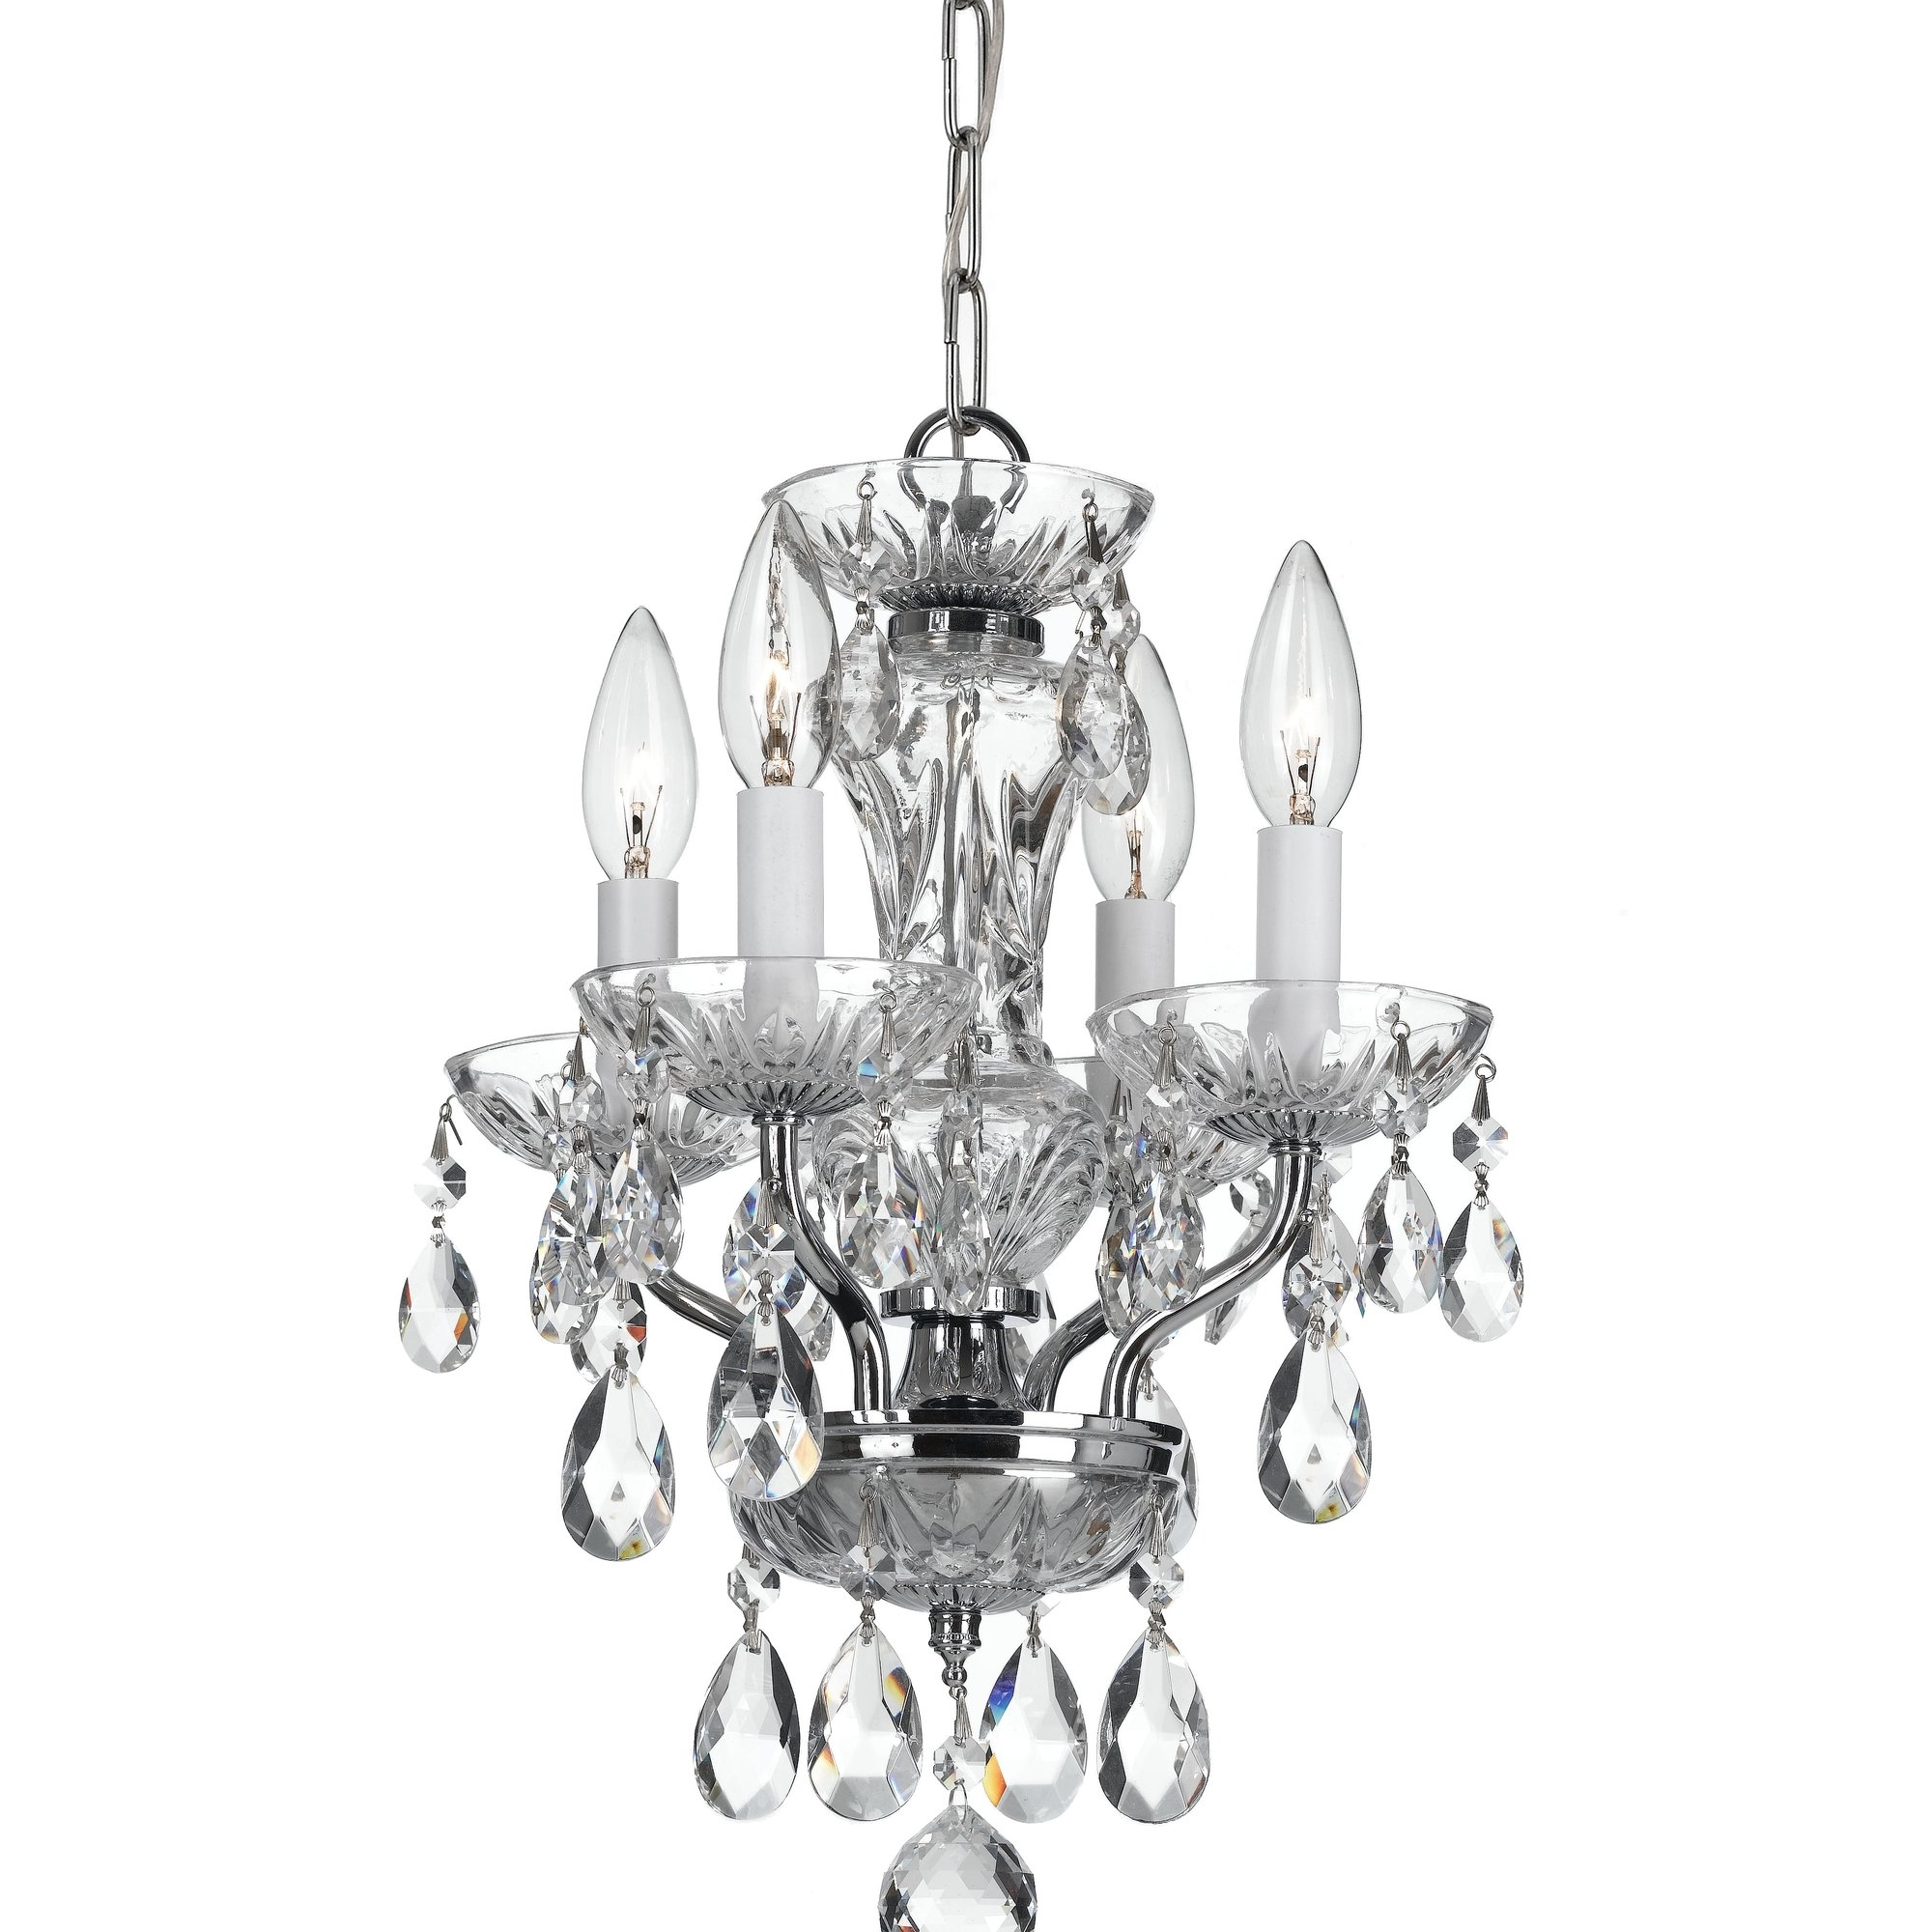 Crystorama Traditional Crystal 4 Light Crystal Chandelier With Traditional Chandelier (Image 3 of 15)